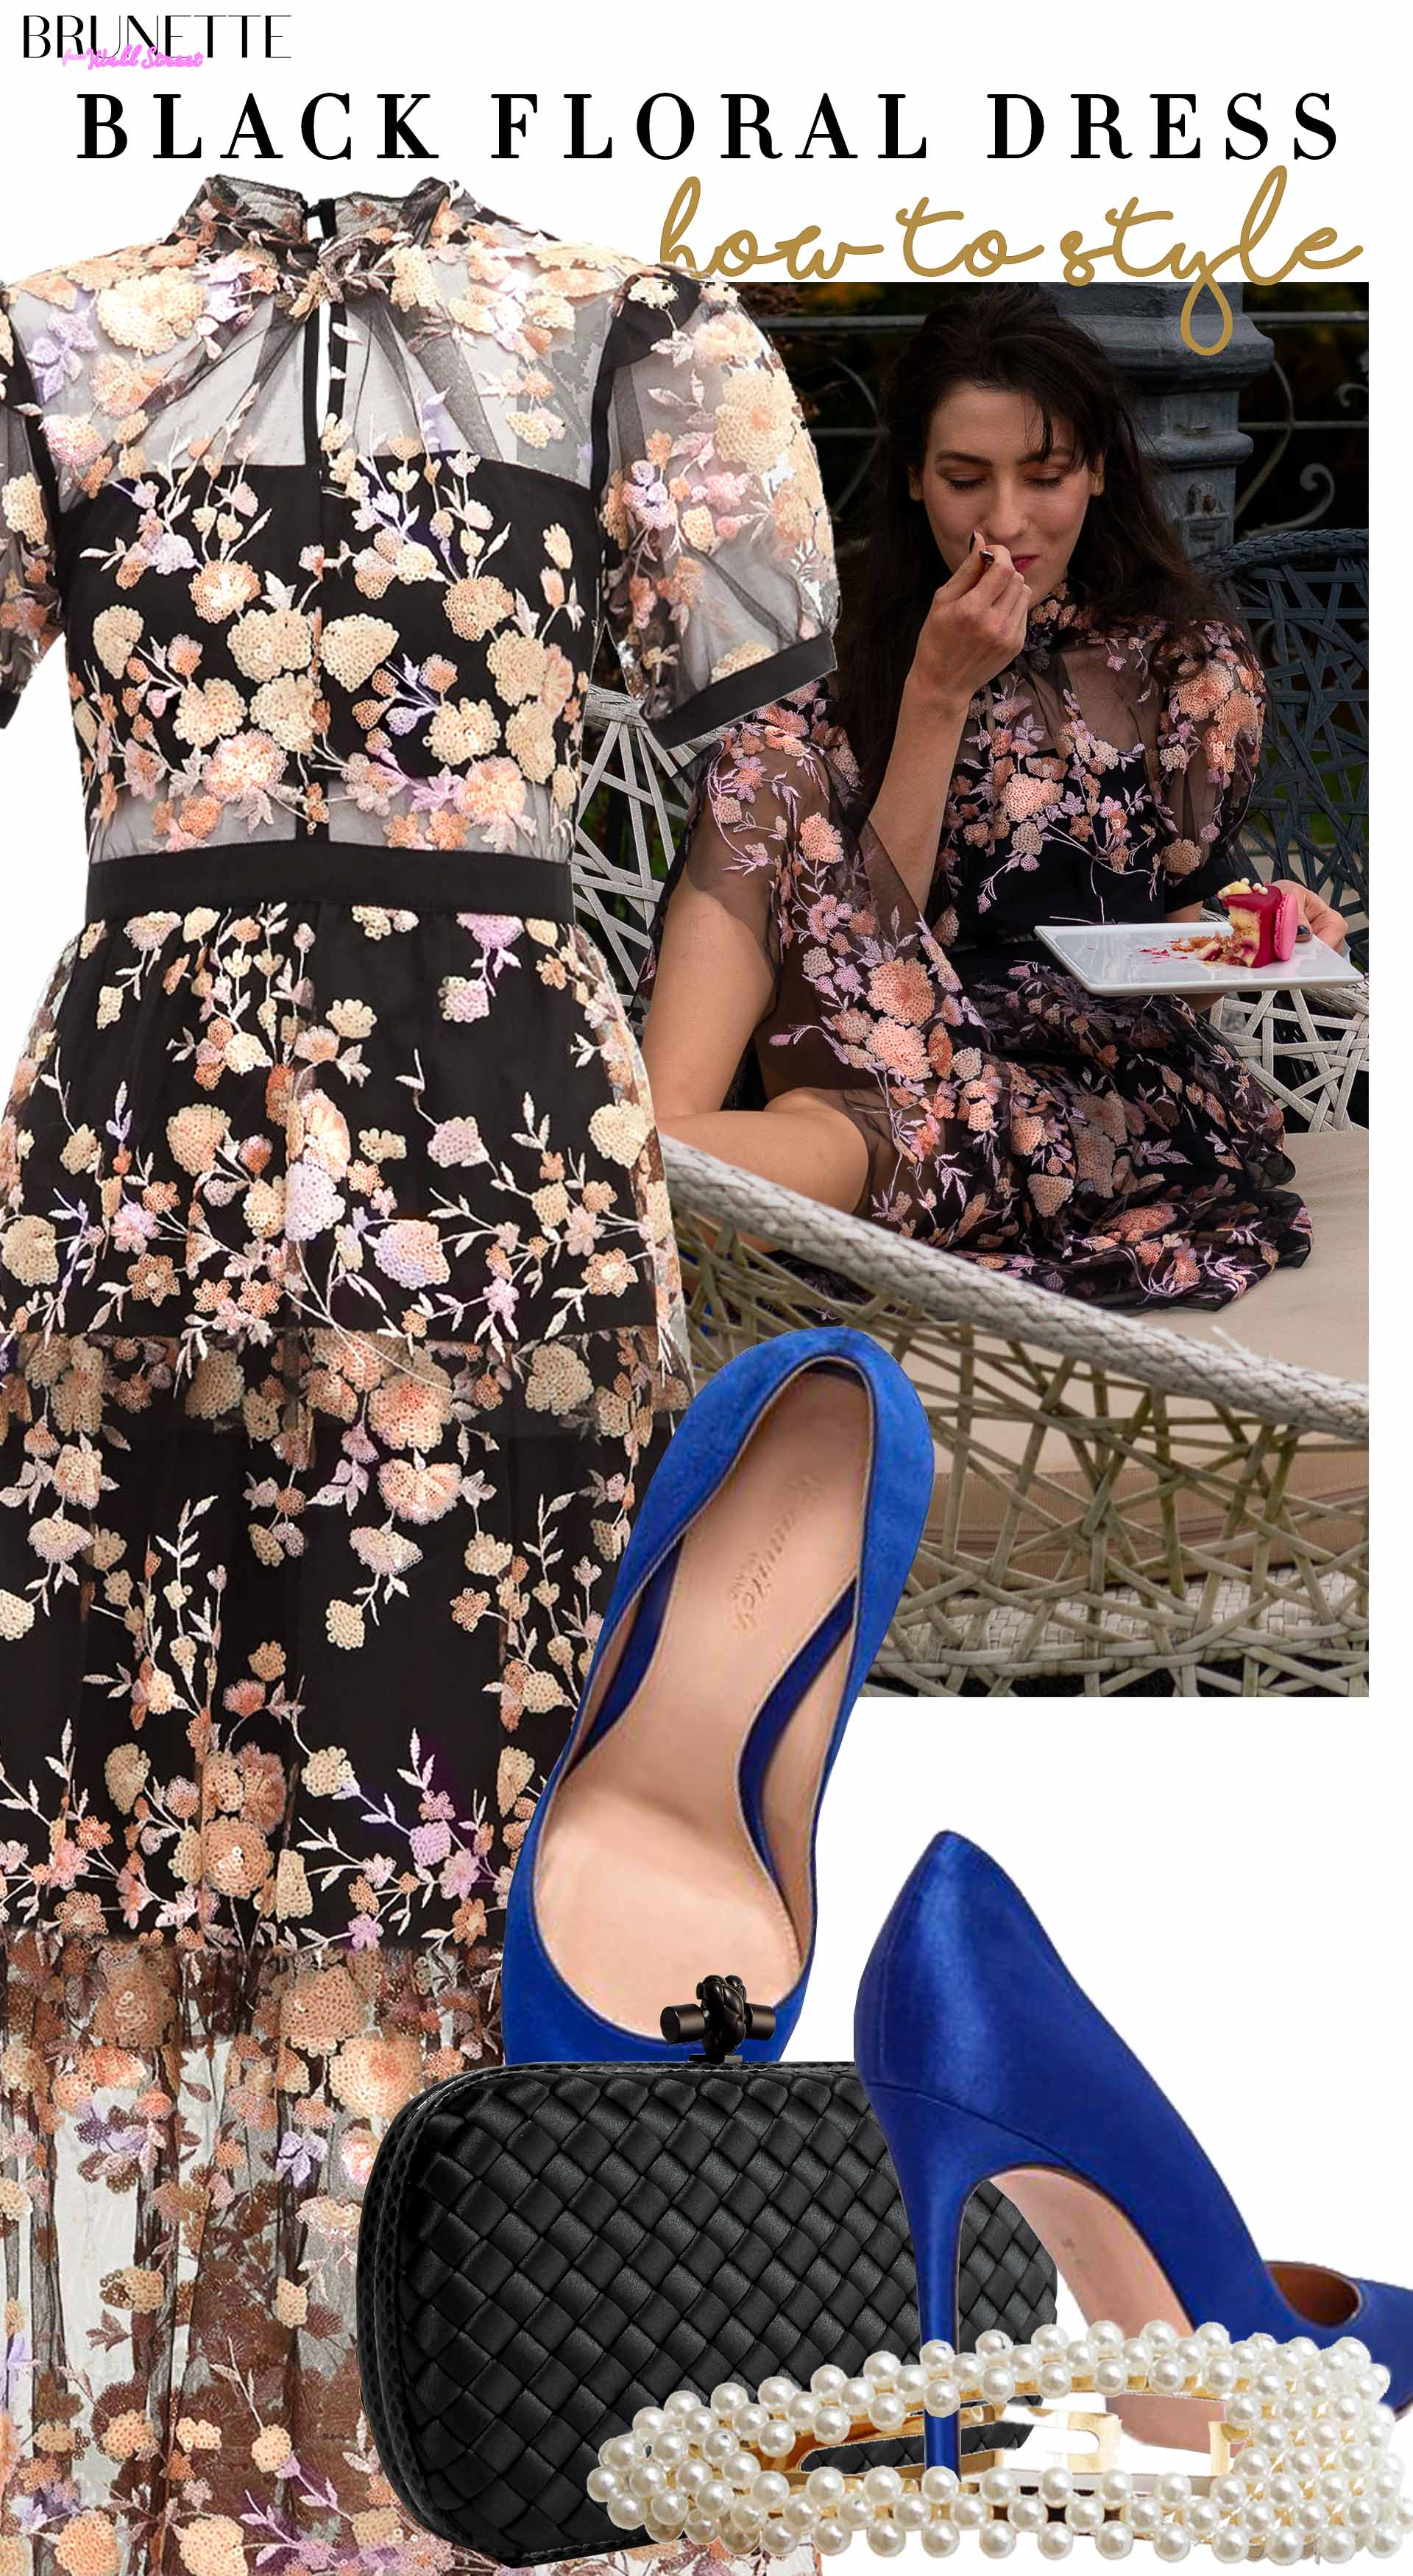 Brunette from Wall Street how to style black floral dress Self Portrait blue Gianvito Rossi pumps Bottegga Veneta clutch pearl hairpin for birthday brunch party